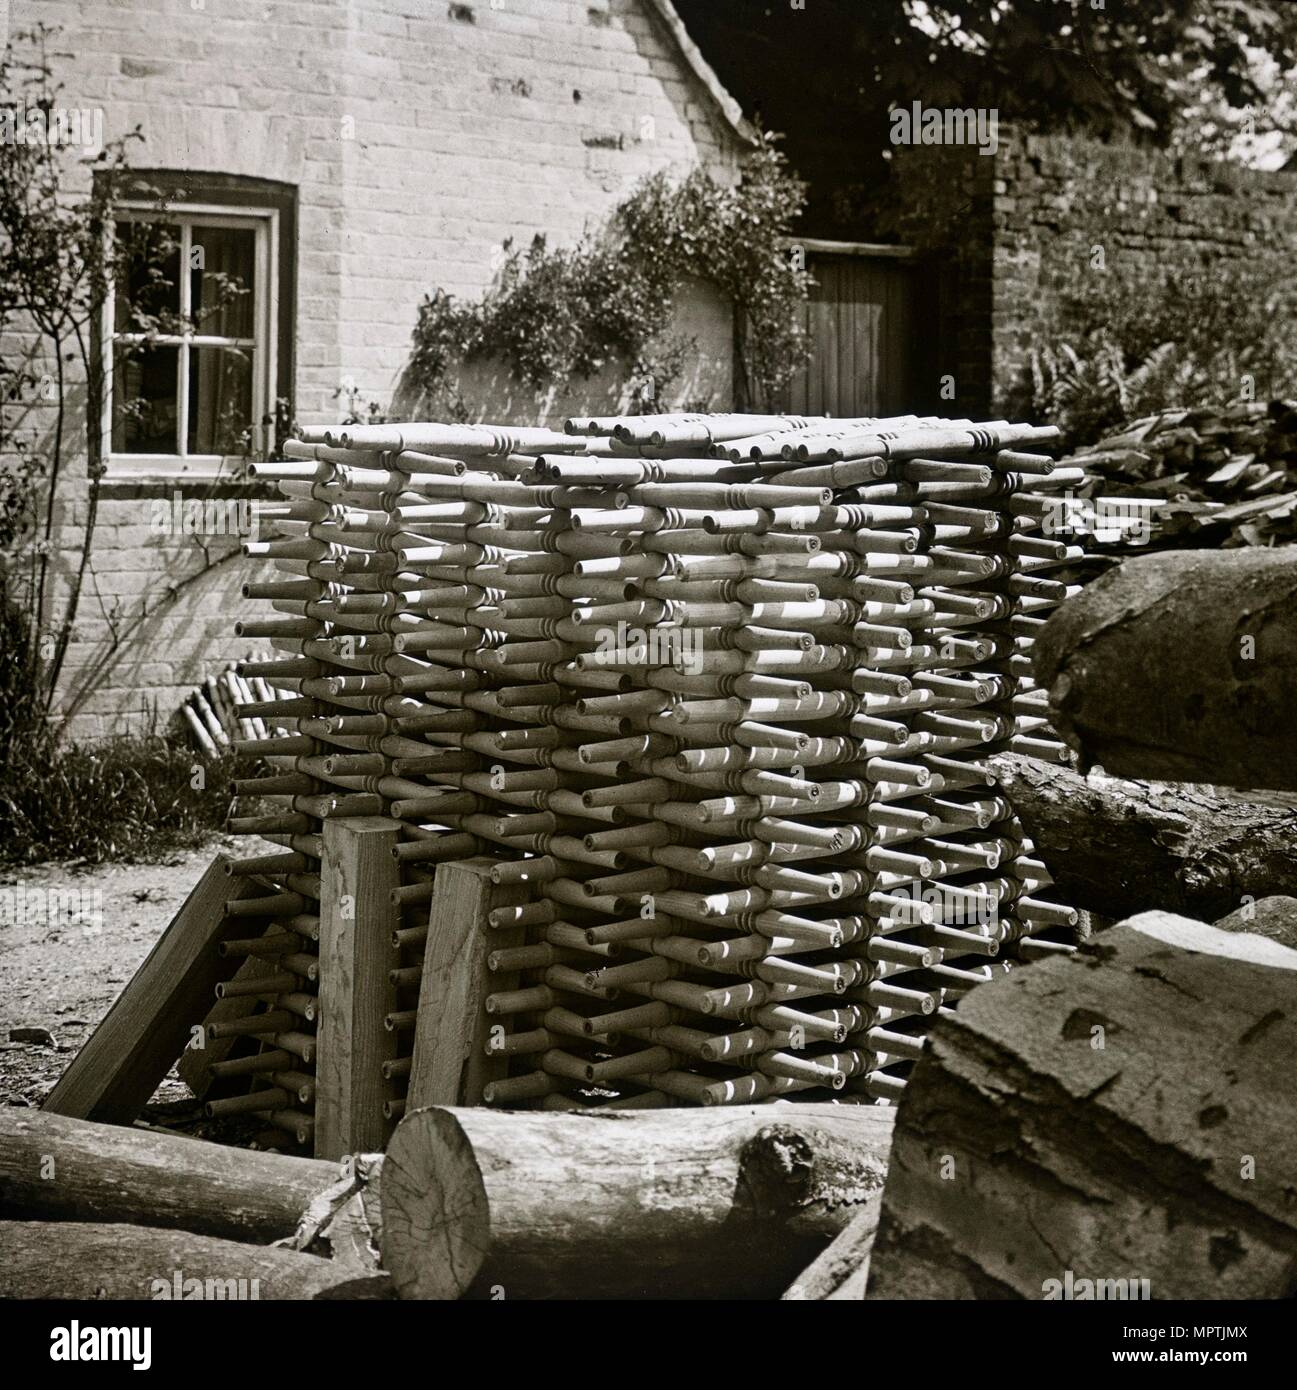 Stack of turned chair legs, Turville, Buckinghamshire, early 20th century. Artist: Unknown. - Stock Image